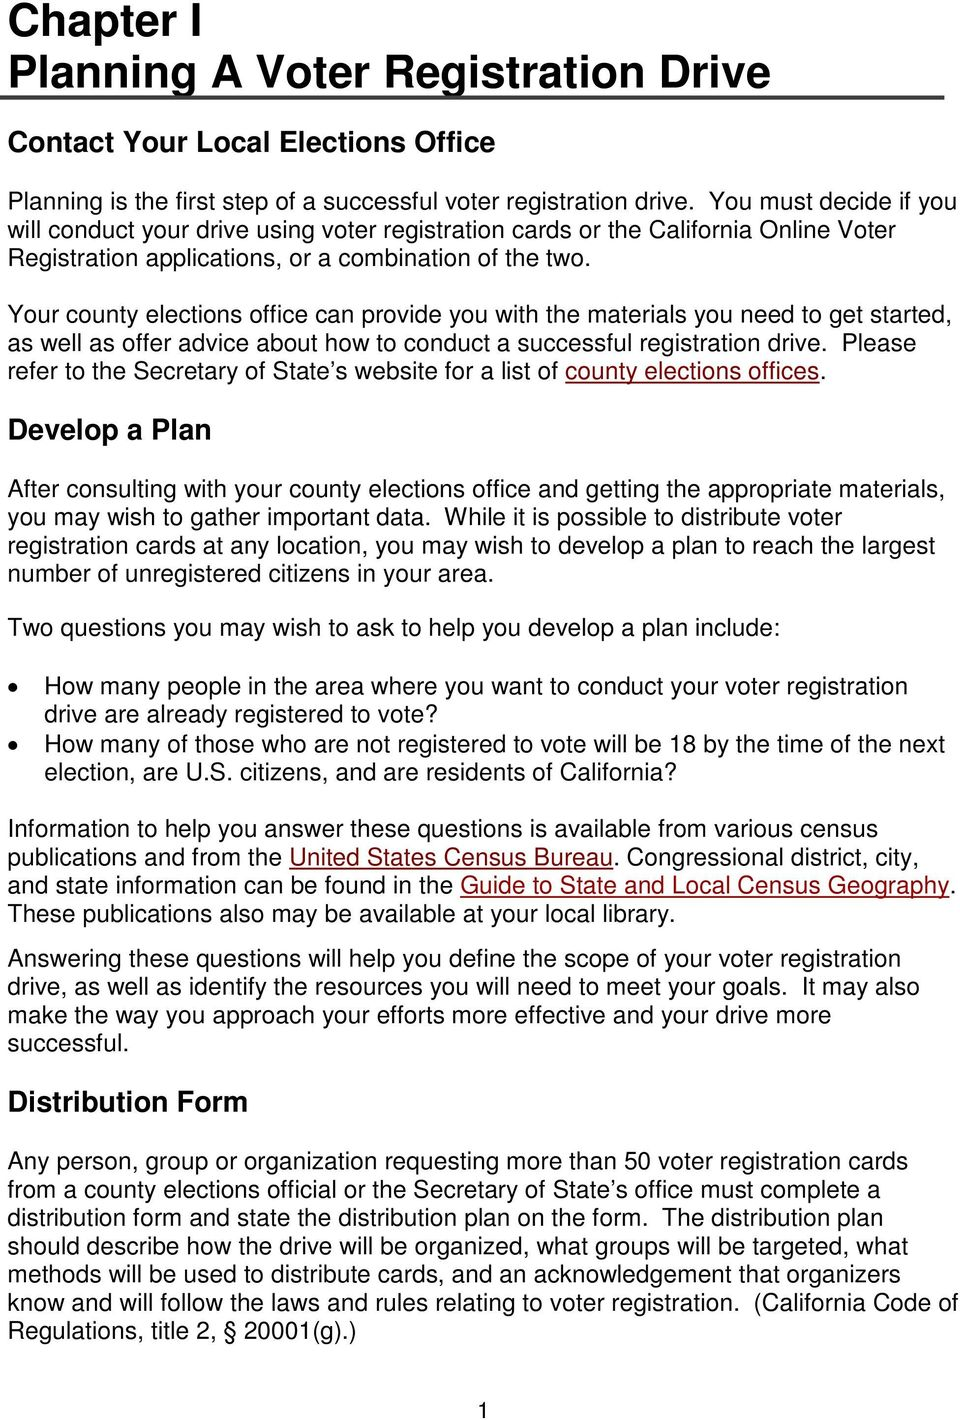 Your county elections office can provide you with the materials you need to get started, as well as offer advice about how to conduct a successful registration drive.